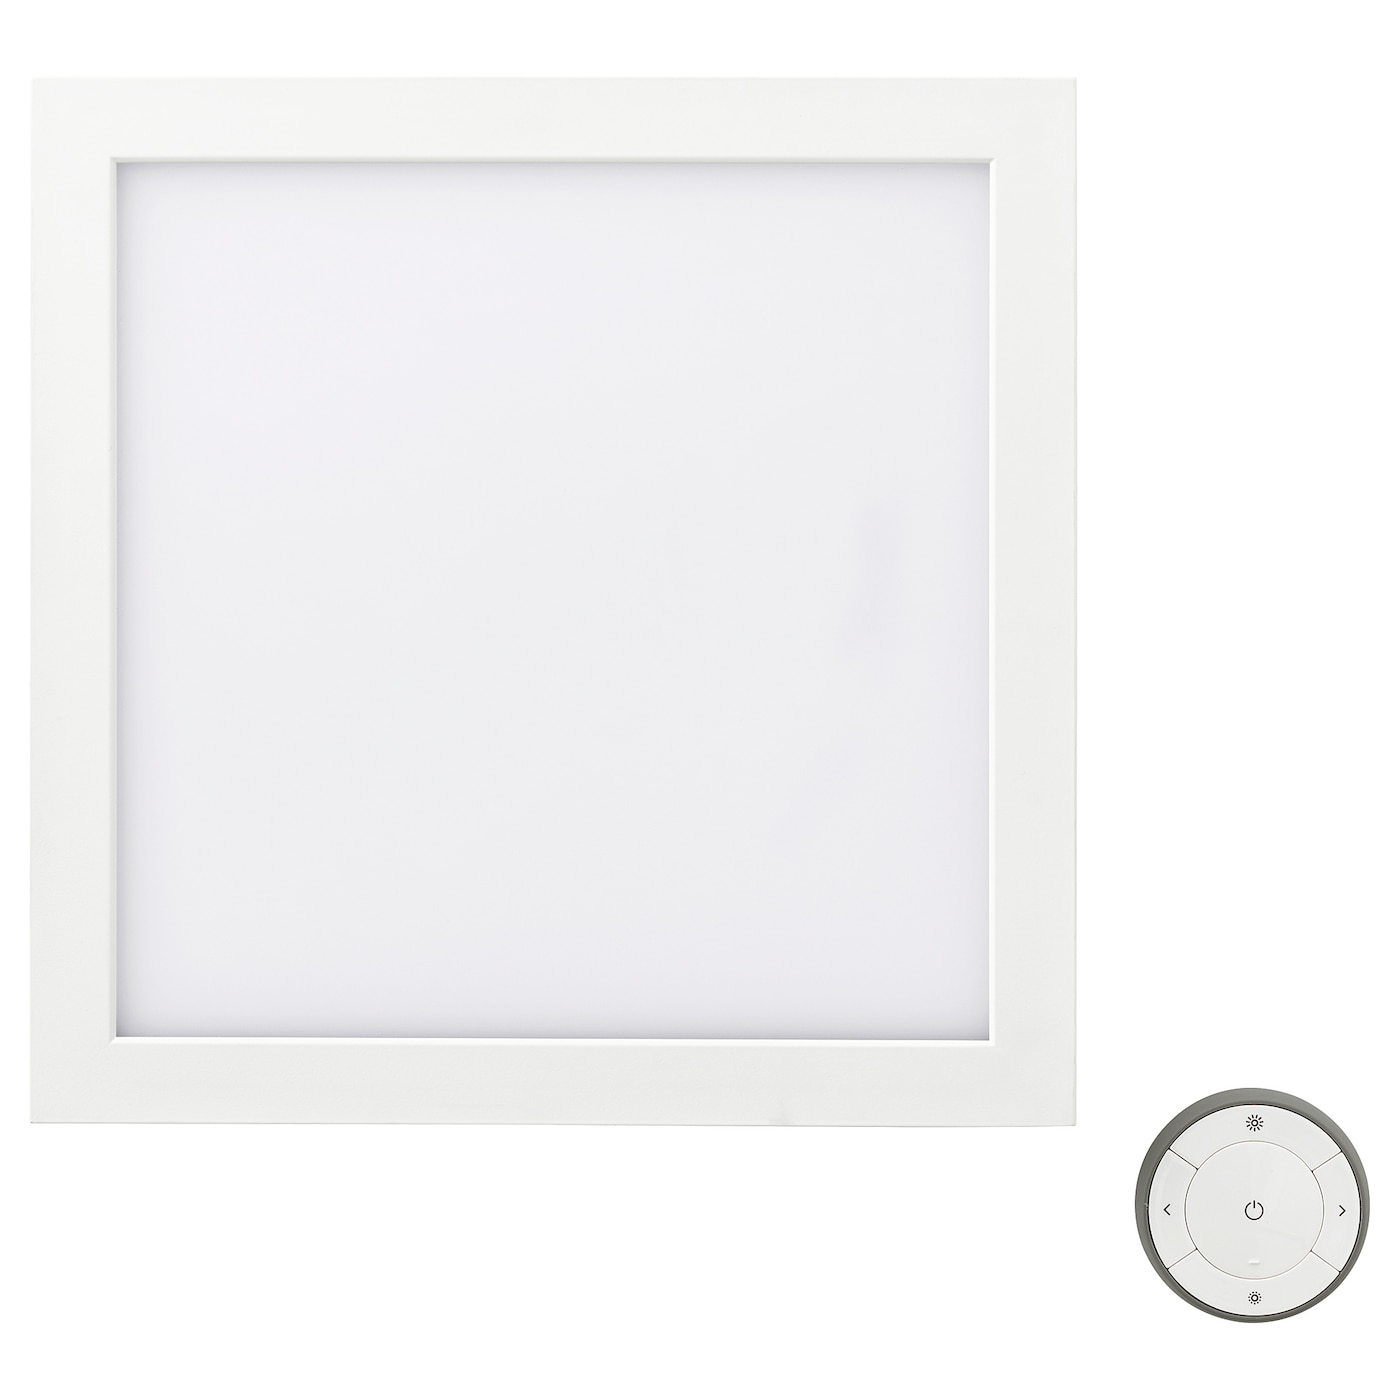 floalt led light panel w wireless control dimmable white spectrum 30 x 30 cm ikea. Black Bedroom Furniture Sets. Home Design Ideas